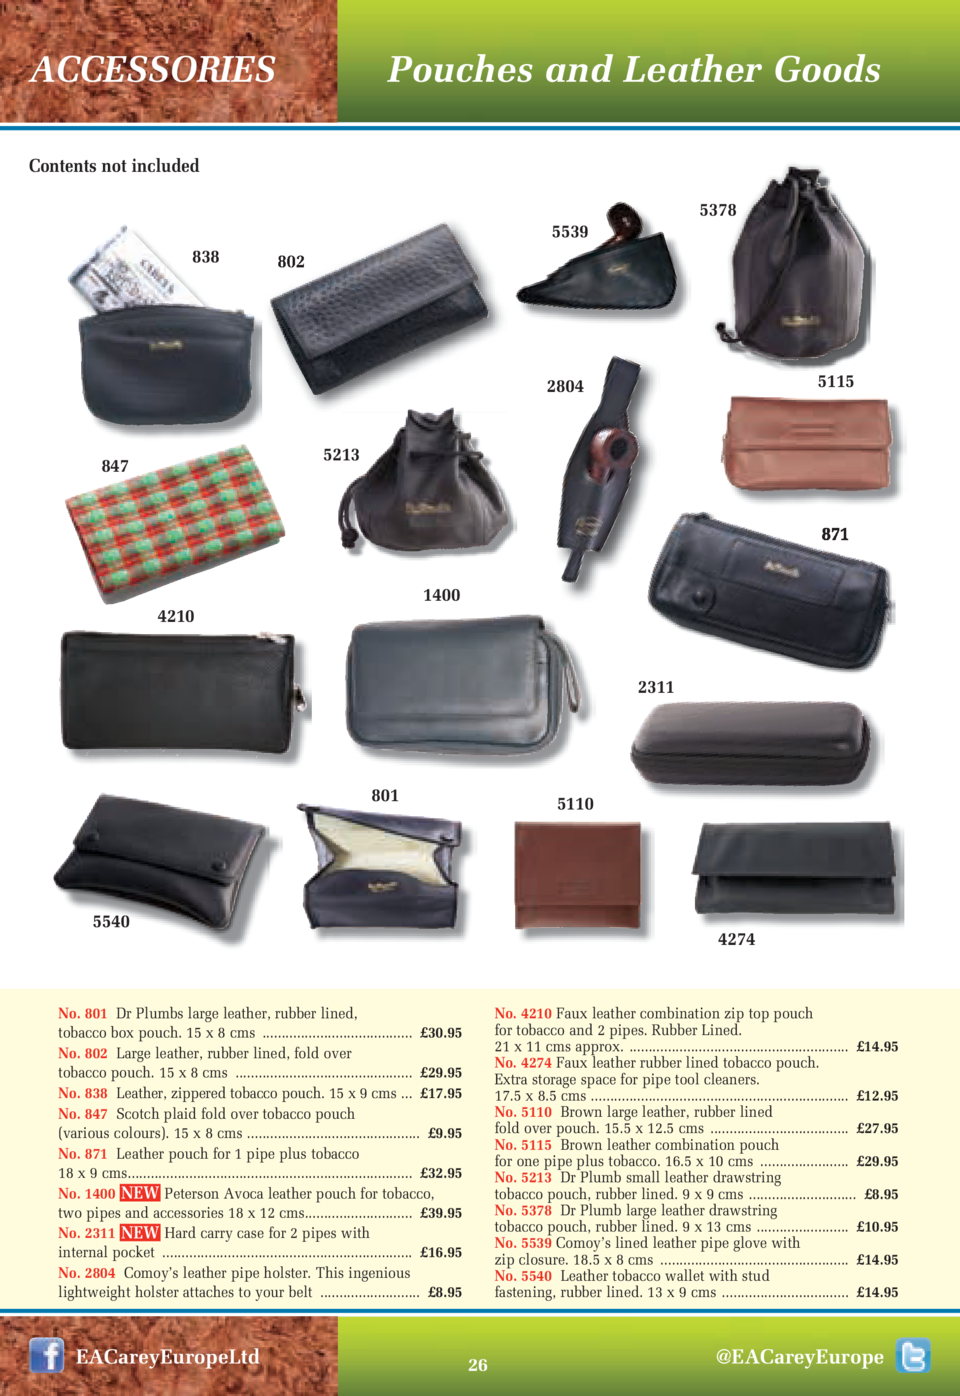 Pouches and Leather Goods  ACCESSORIES Contents not included  5378  5539 838  802  5115  2804 5213  847  871 1400  4210  2...